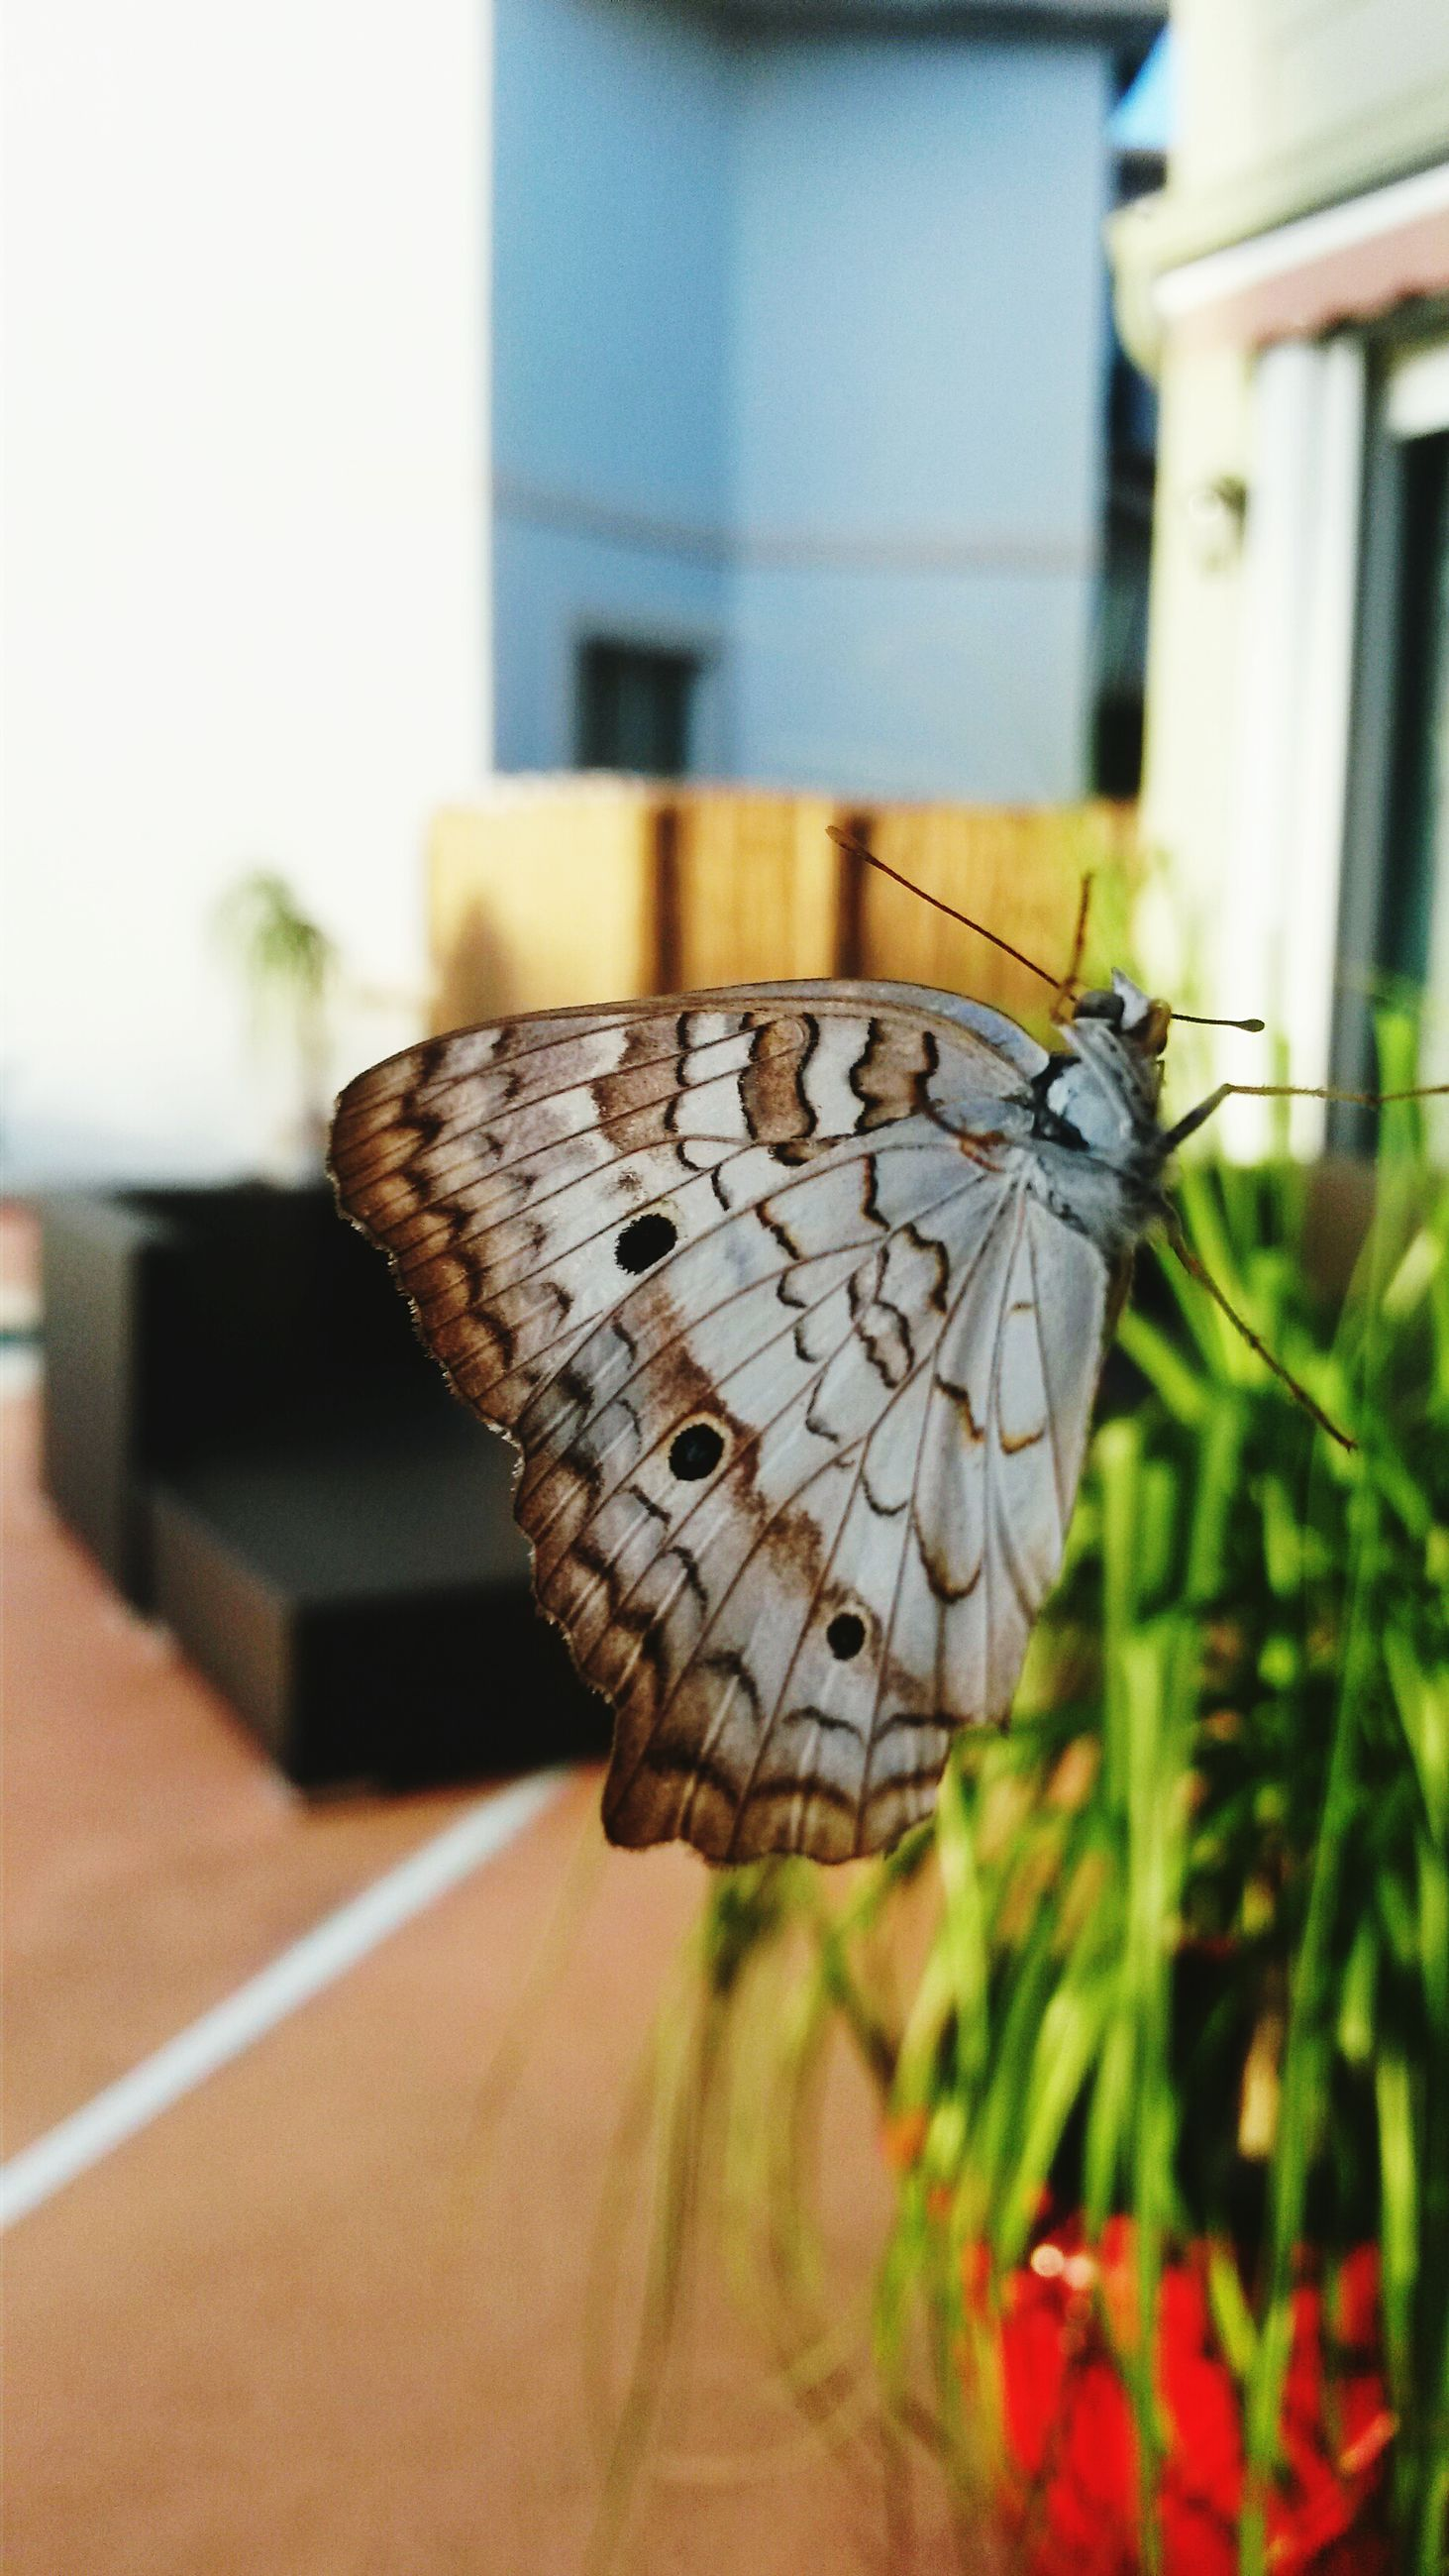 focus on foreground, close-up, built structure, building exterior, selective focus, one animal, architecture, butterfly - insect, insect, animal themes, day, outdoors, wildlife, animals in the wild, butterfly, leaf, animal representation, no people, plant, nature